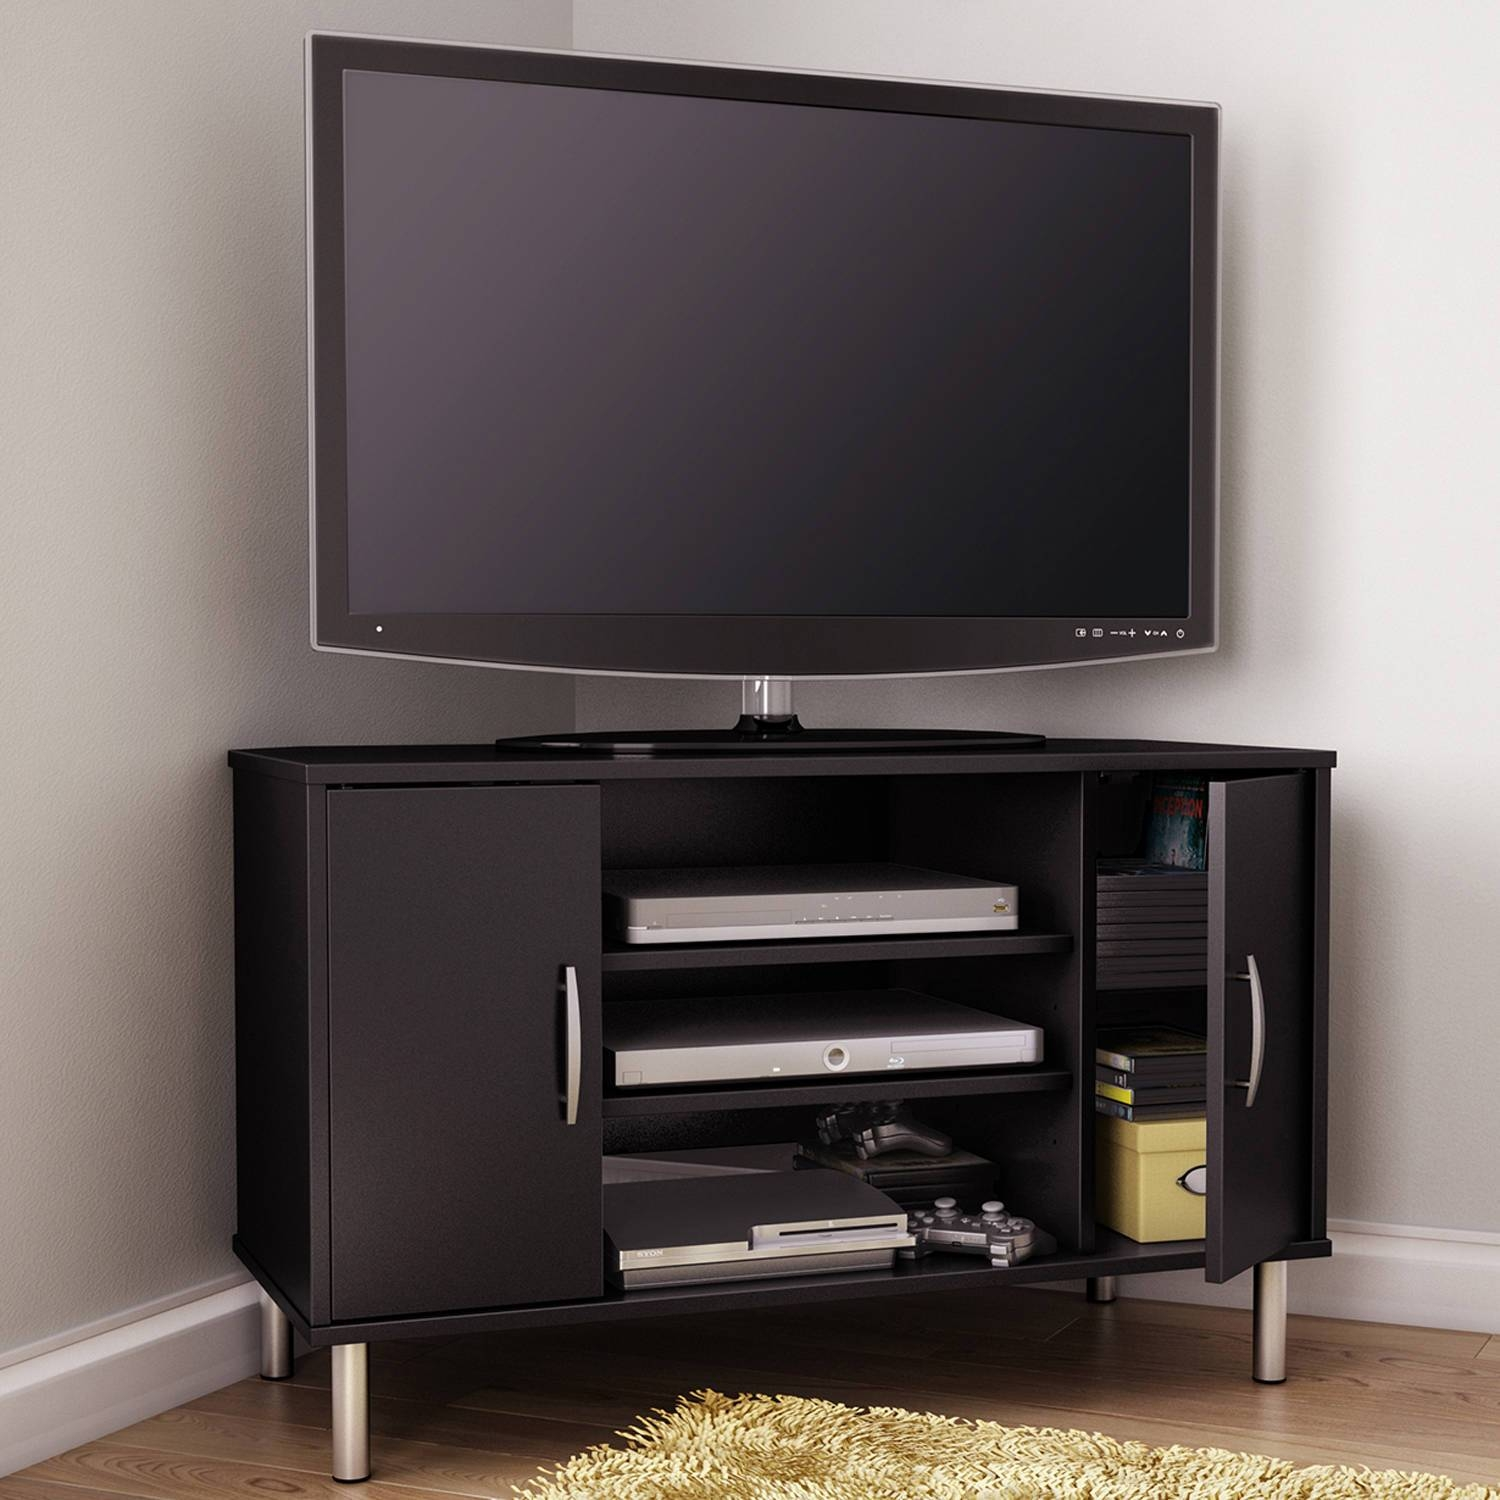 "South Shore Renta Corner Tv Stand For Tvs Up To 42"", Multiple Pertaining To Corner Tv Tables Stands (View 12 of 15)"